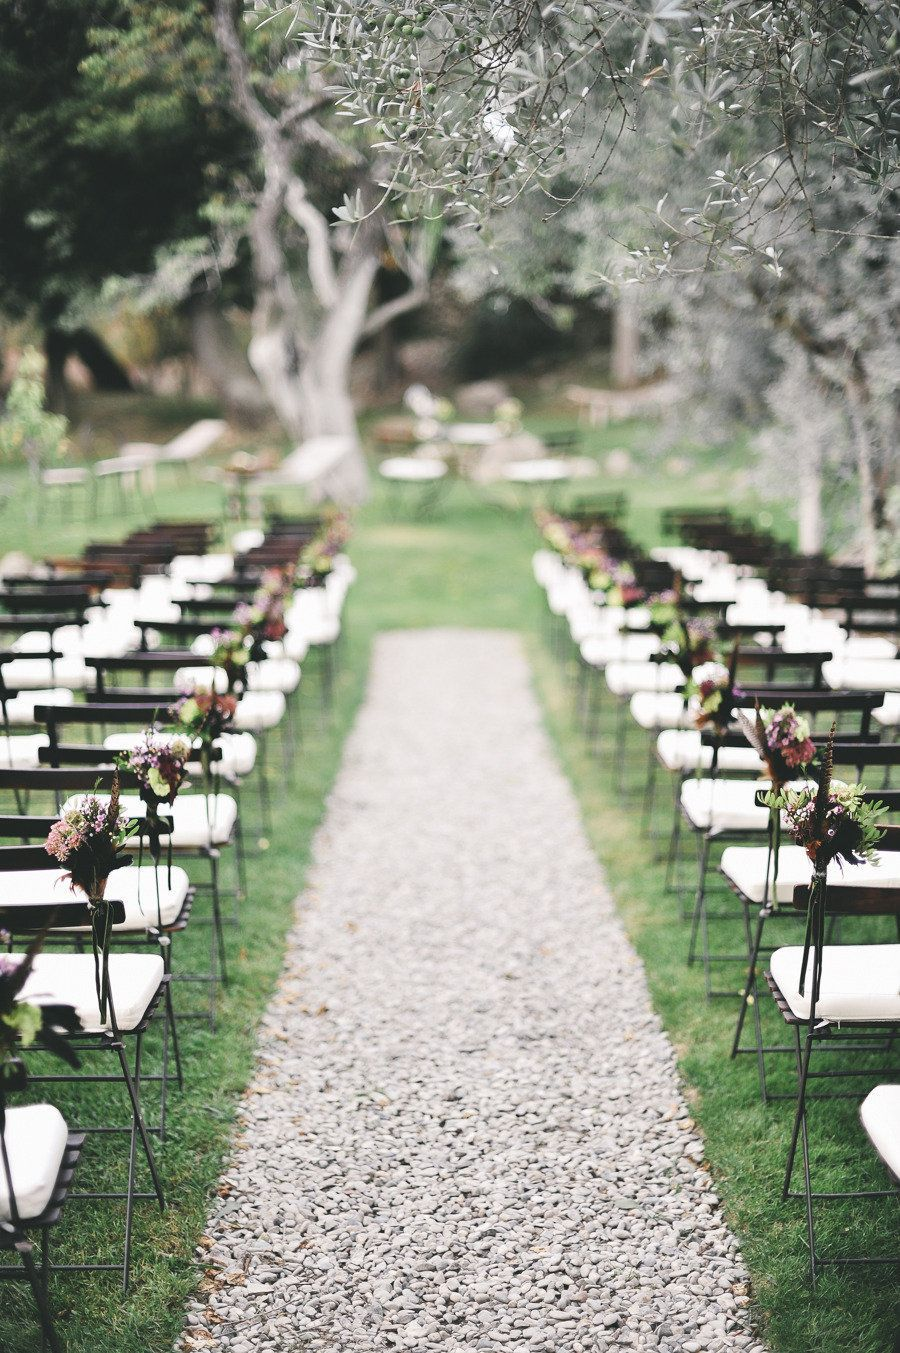 Inspiration Lawn Seating For Your Outdoor Wedding Ceremony Via Lisa Poggi Photography